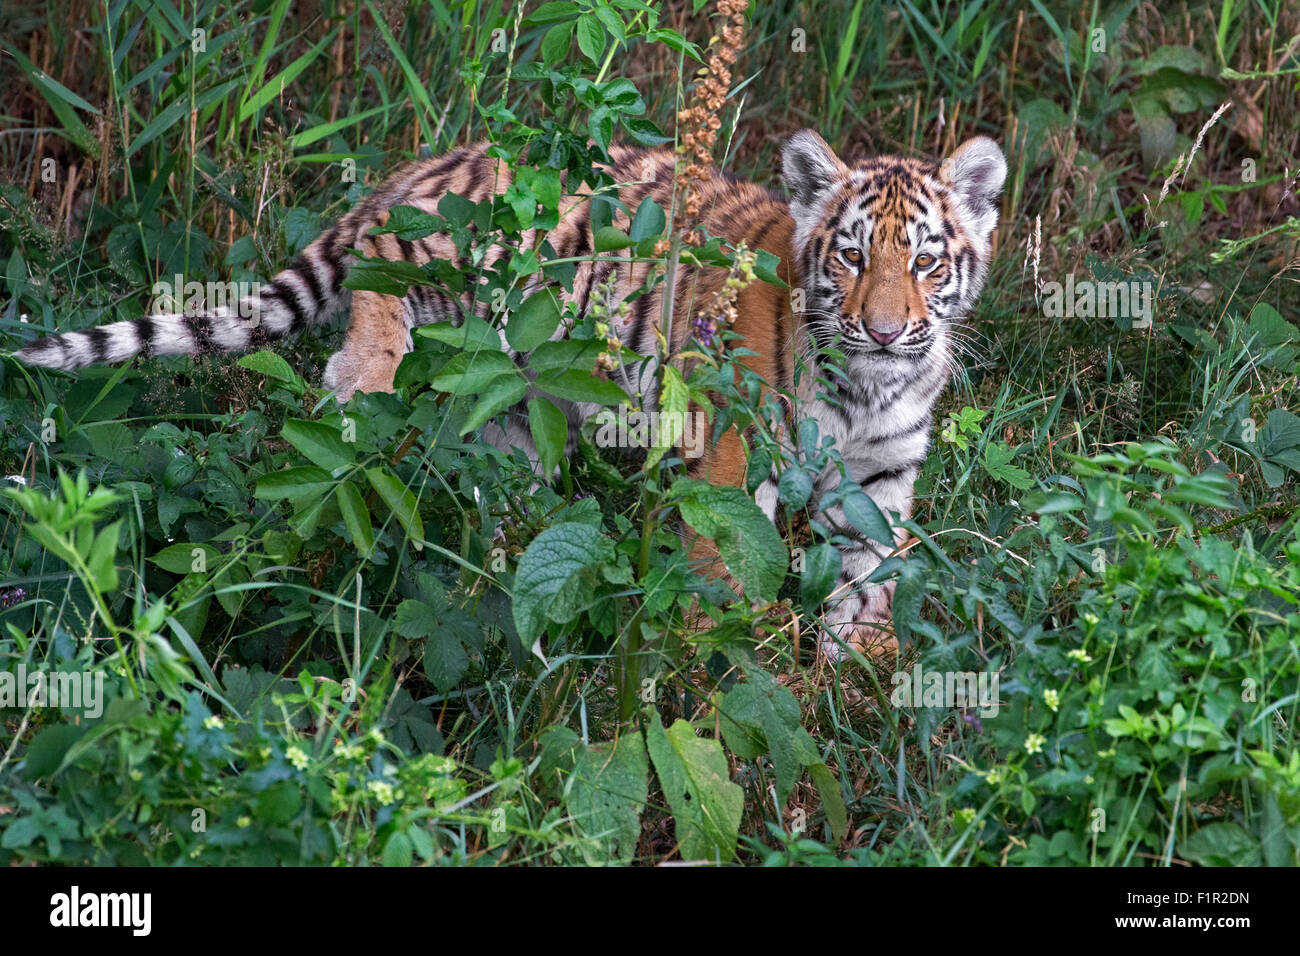 Amur tiger cub, four months old. - Stock Image